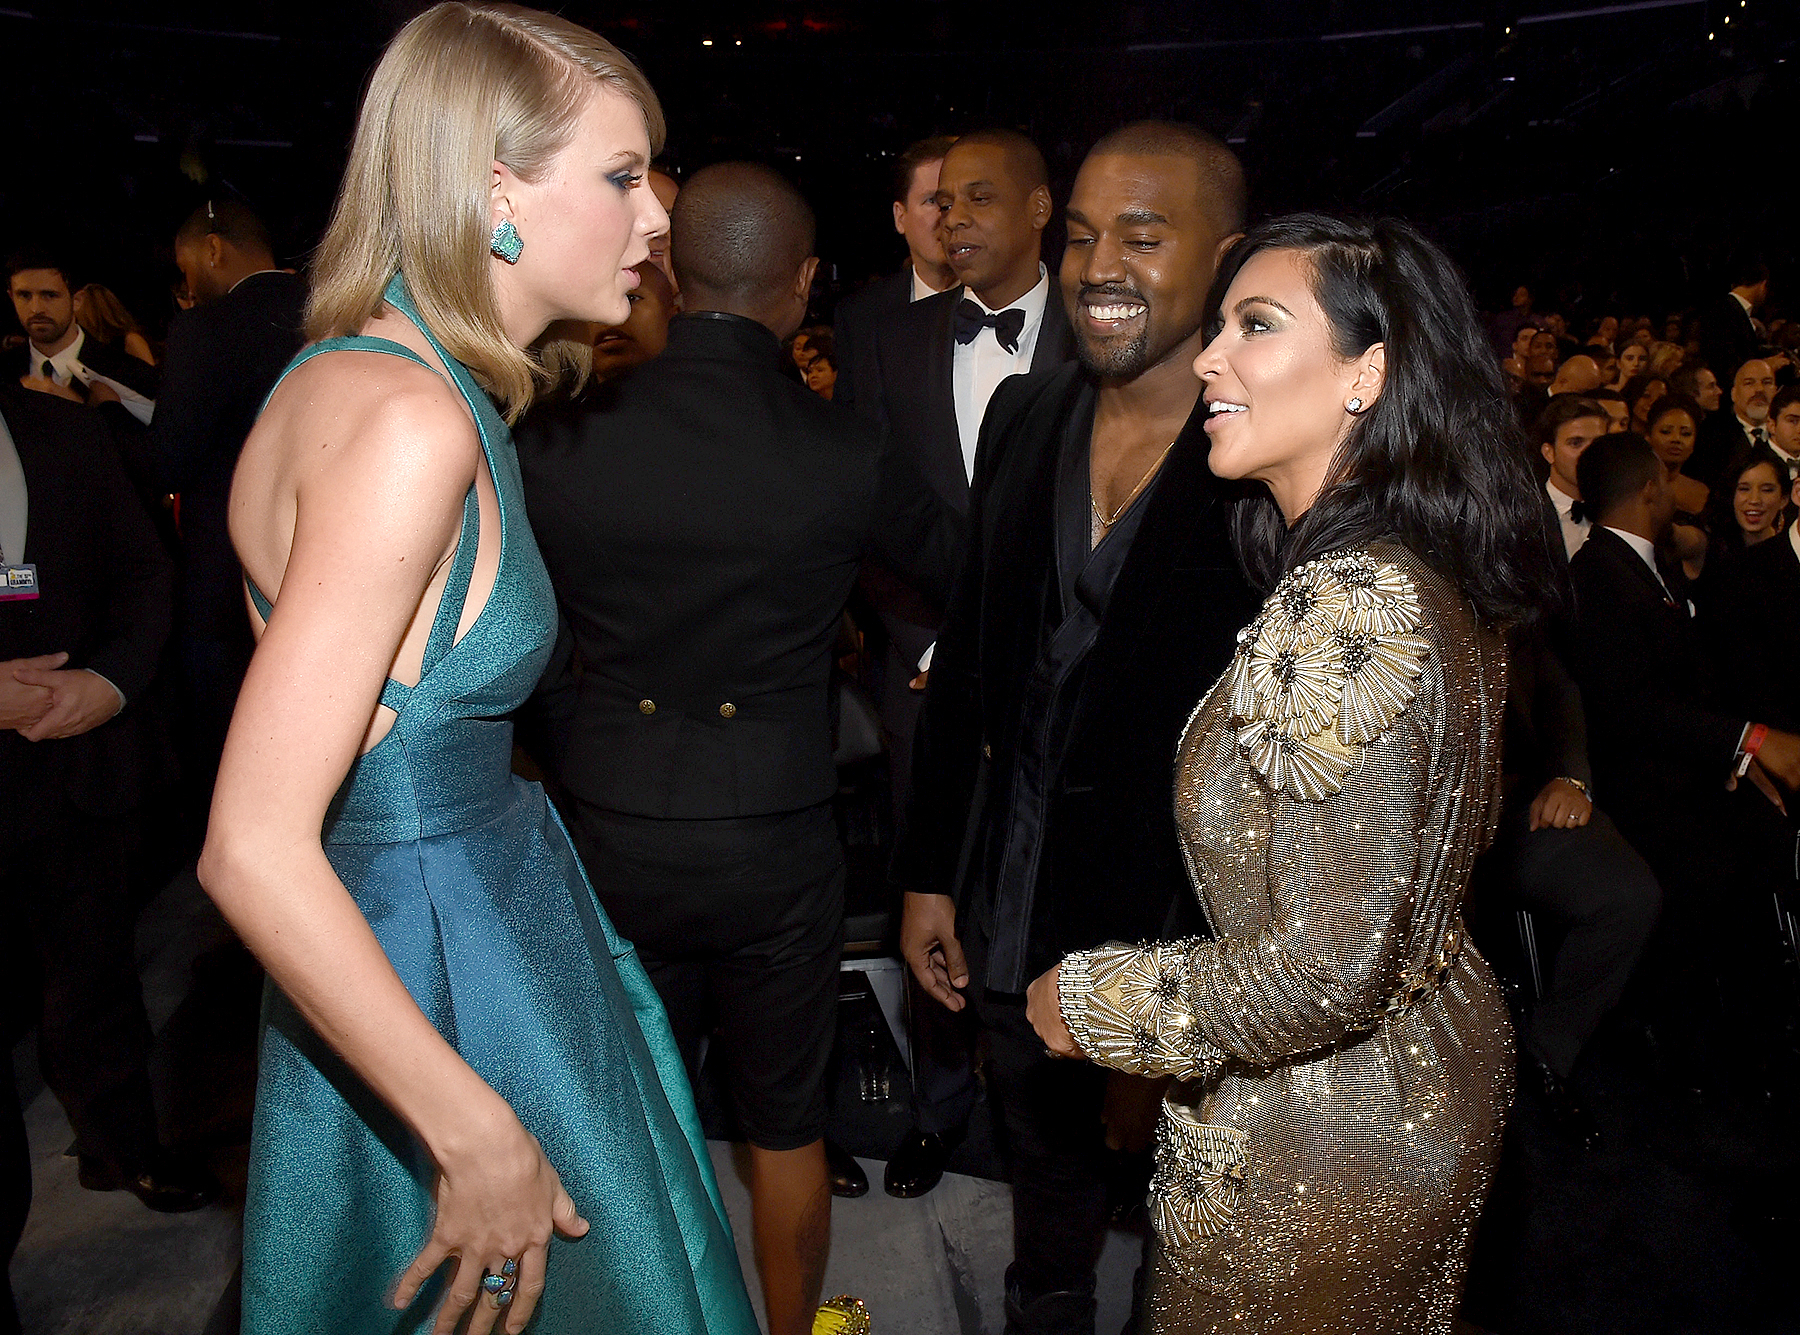 Taylor Swift, Jay Z and Kanye West and tv personality Kim Kardashian attend The 57th Annual GRAMMY Awards at the STAPLES Center on February 8, 2015 in Los Angeles, California.